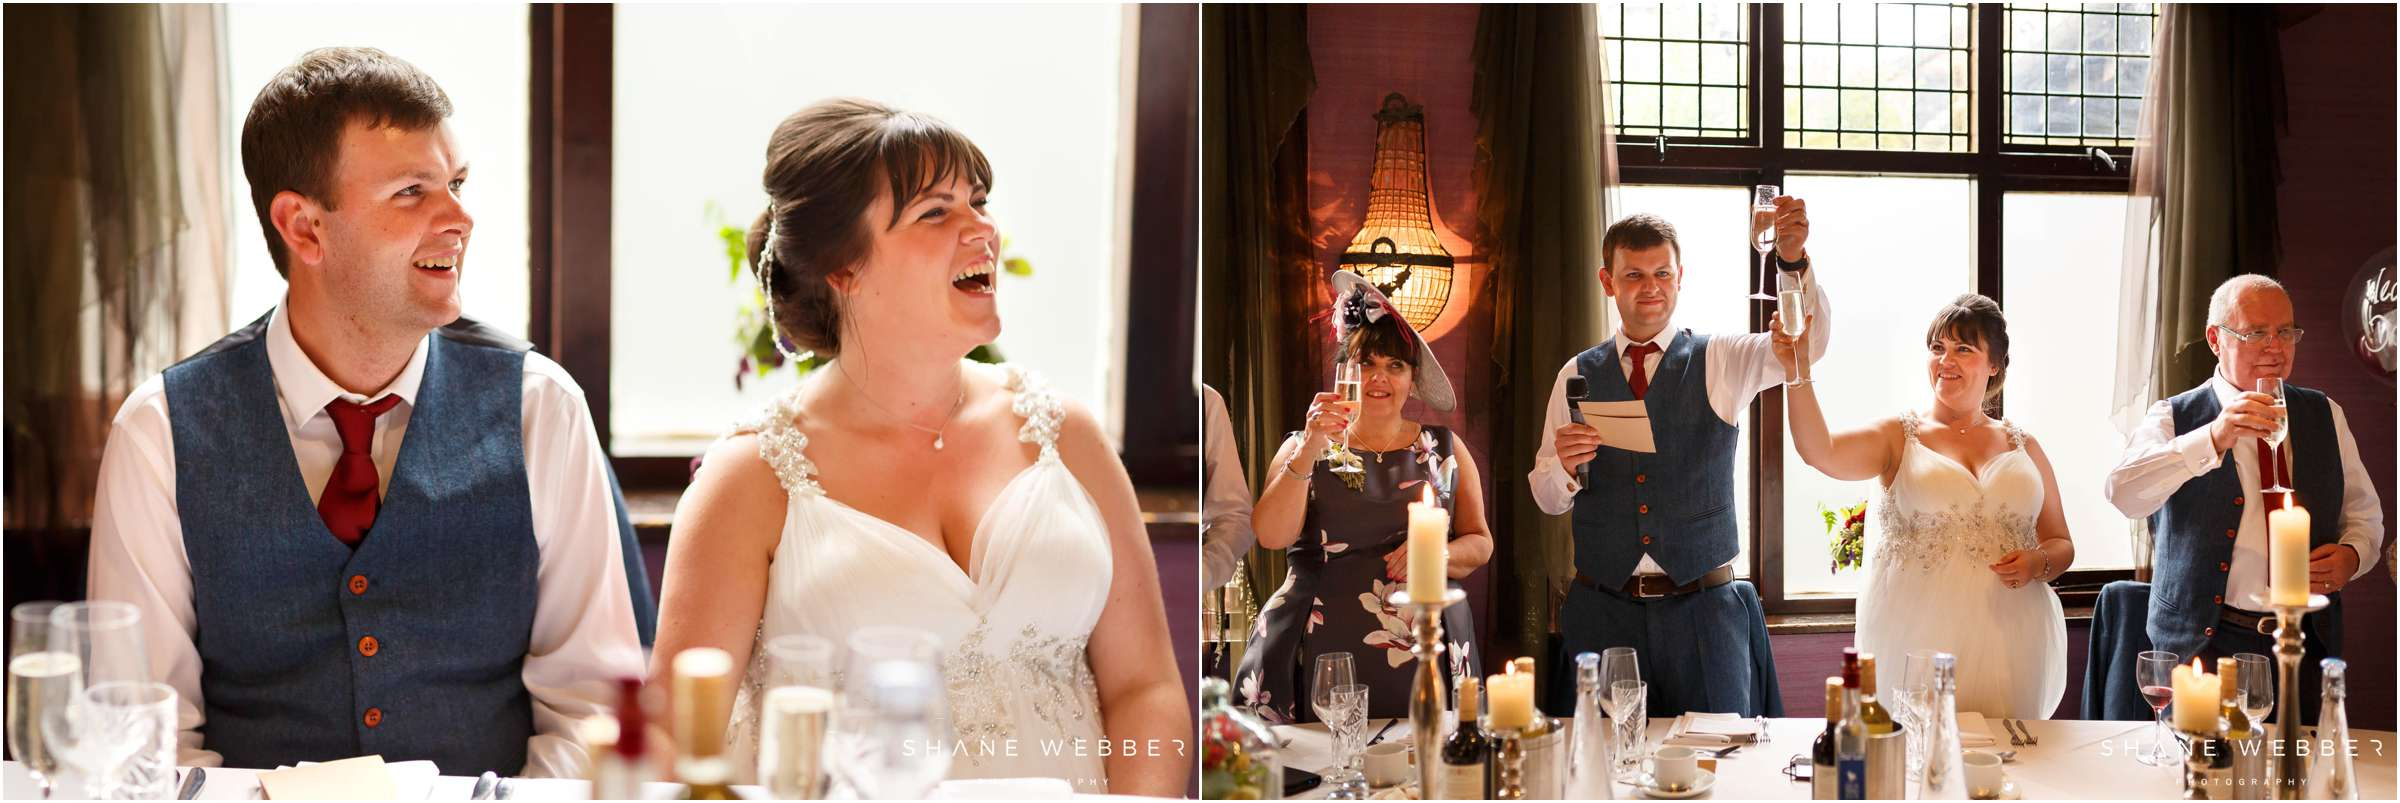 wedding speech reaction photos